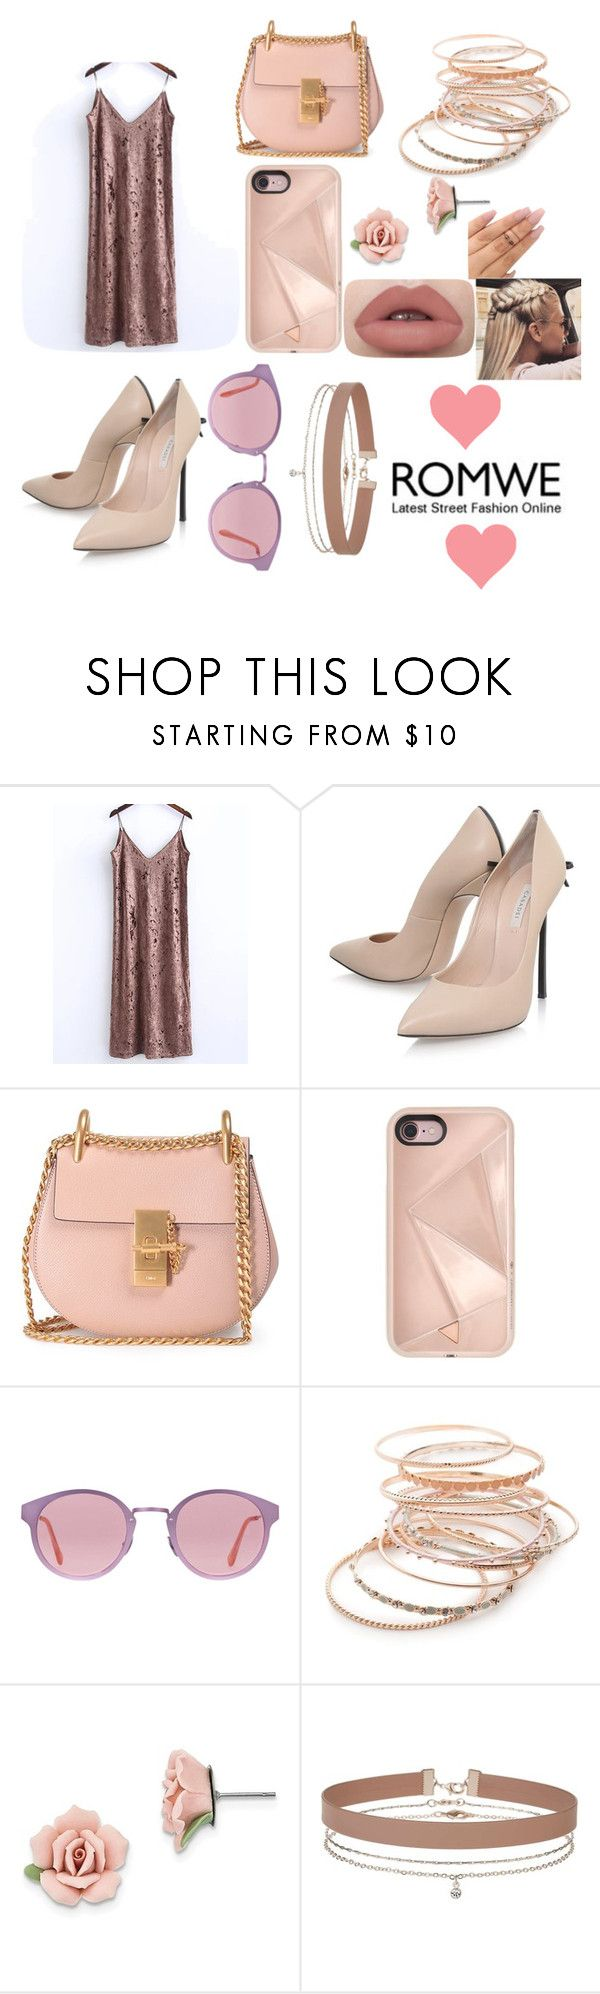 """""""rose gold cami dress"""" by norinnyc ❤ liked on Polyvore featuring Casadei, Chloé, Rebecca Minkoff, RetroSuperFuture, Red Camel, 1928 and Miss Selfridge"""